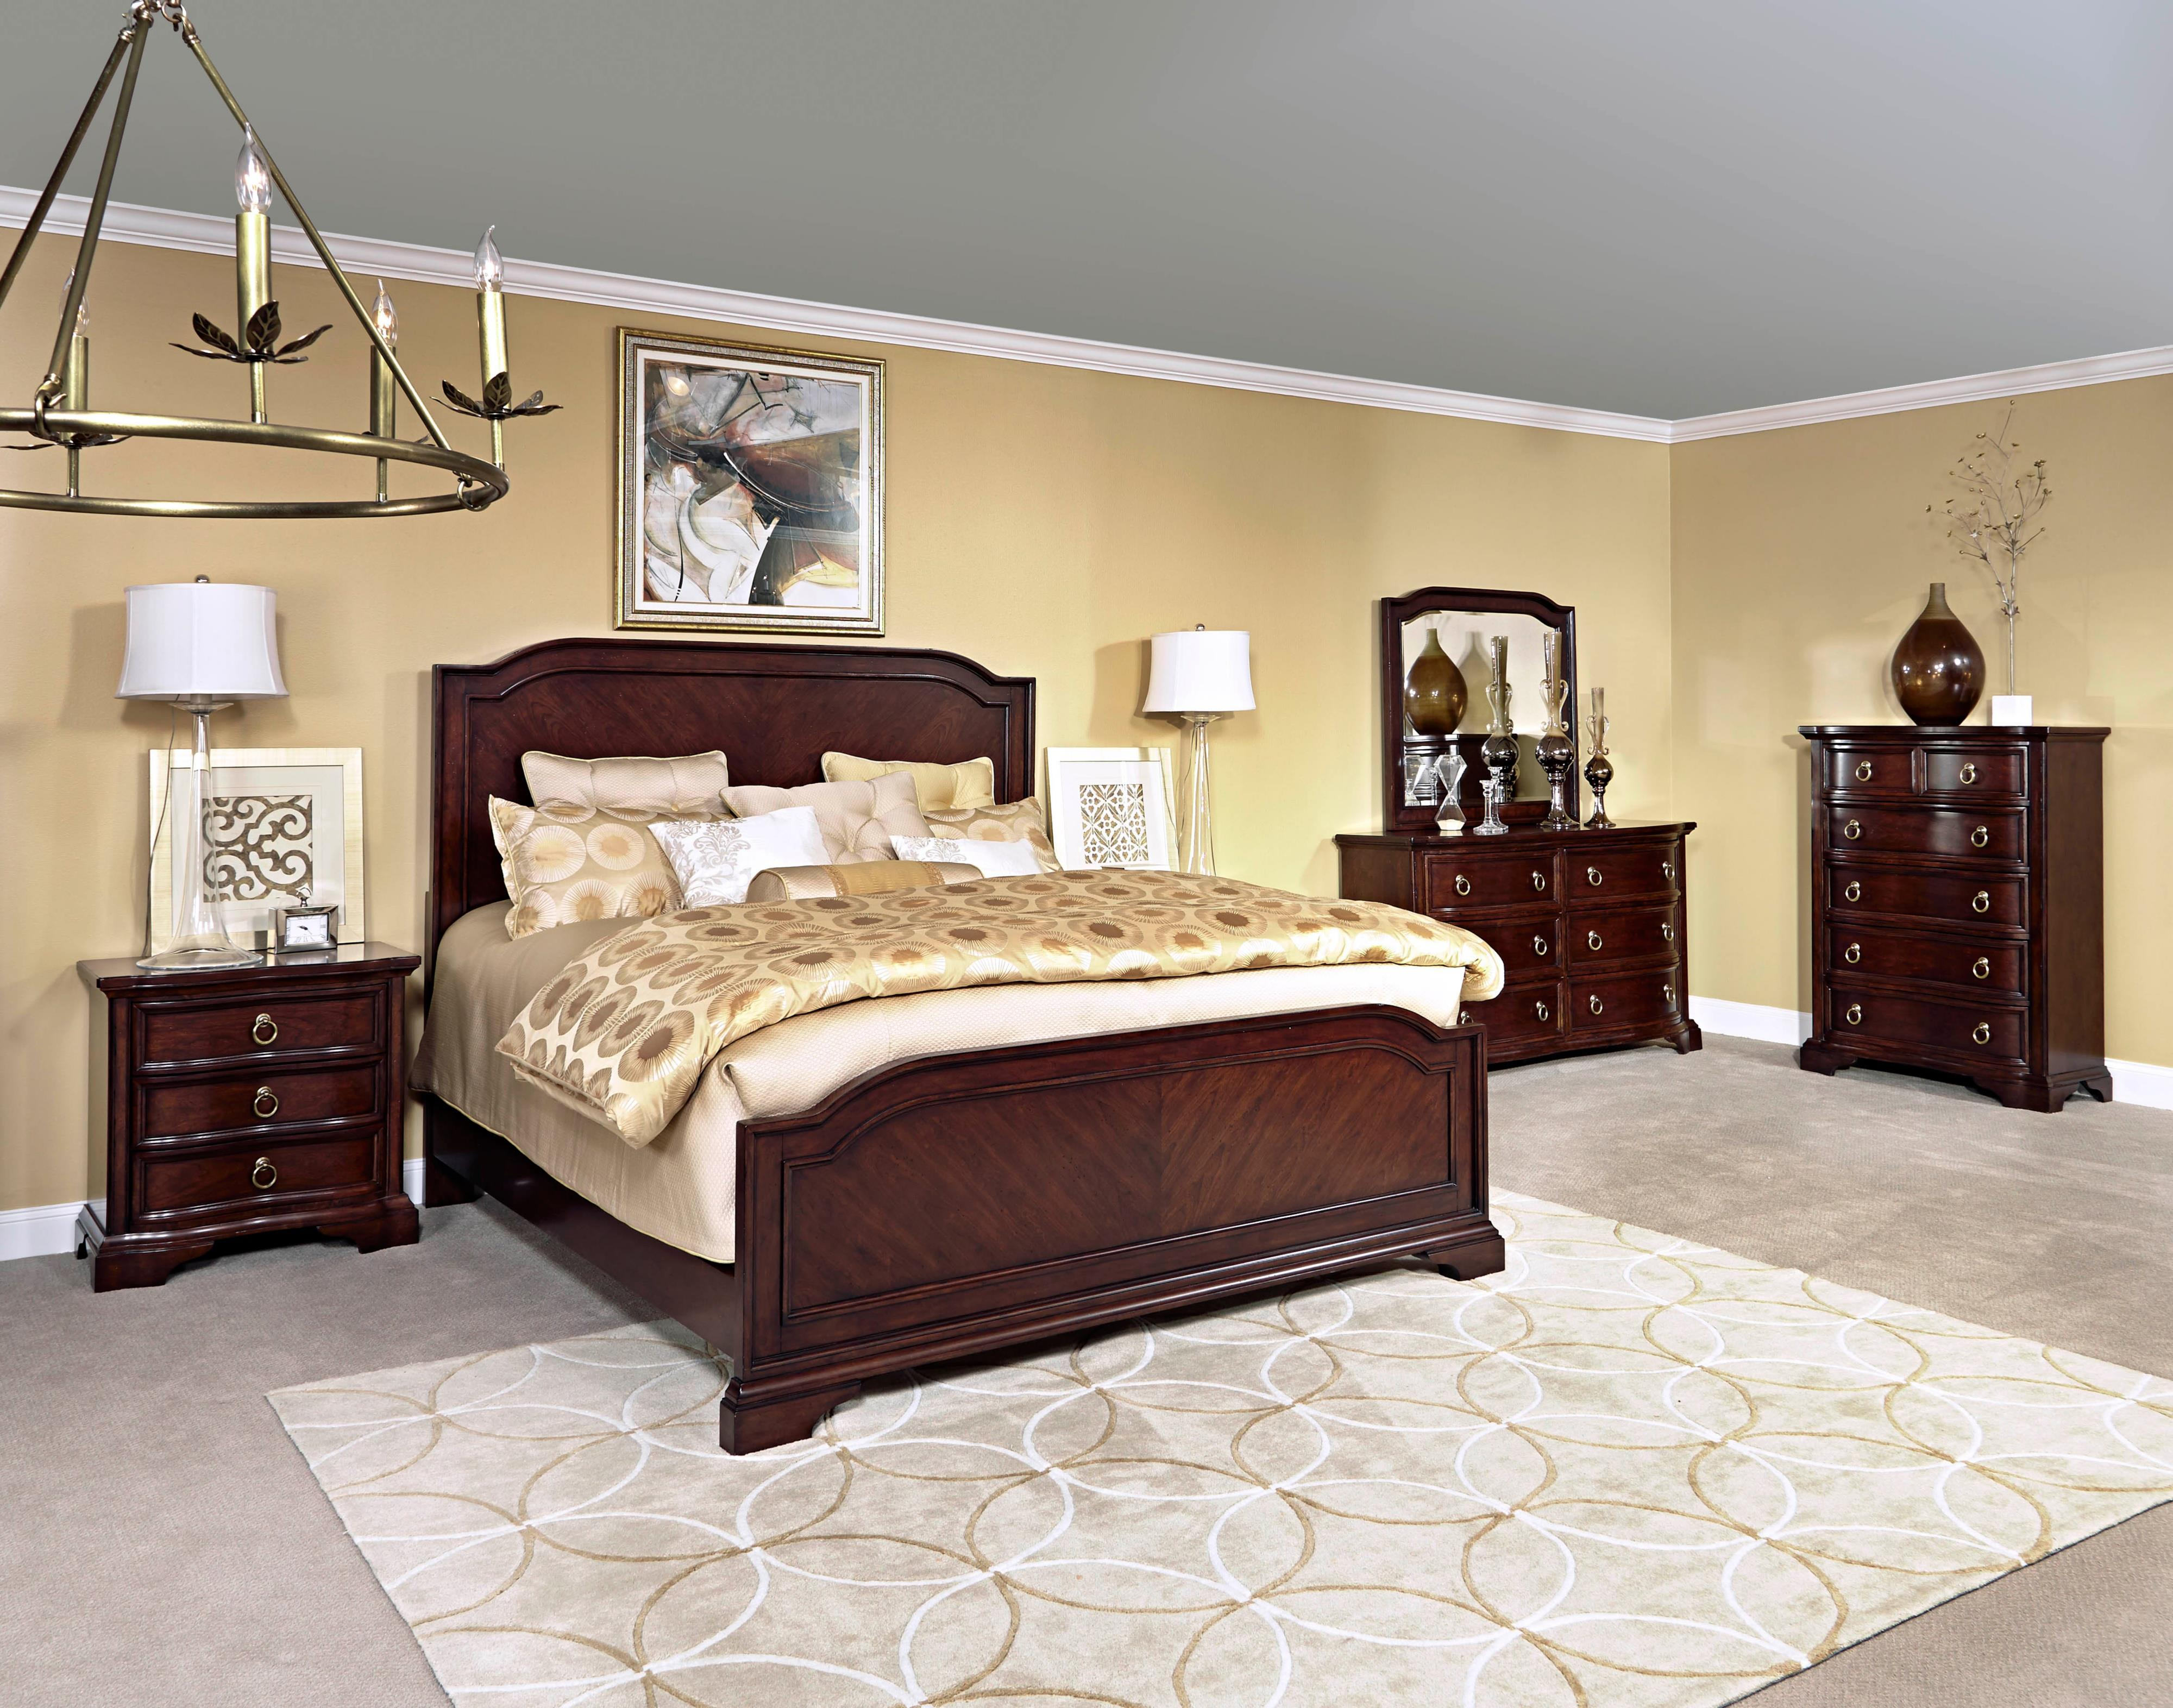 Broyhill Furniture Elaina California King Bedroom Group - Item Number: 4640 CK Bedroom Group 1